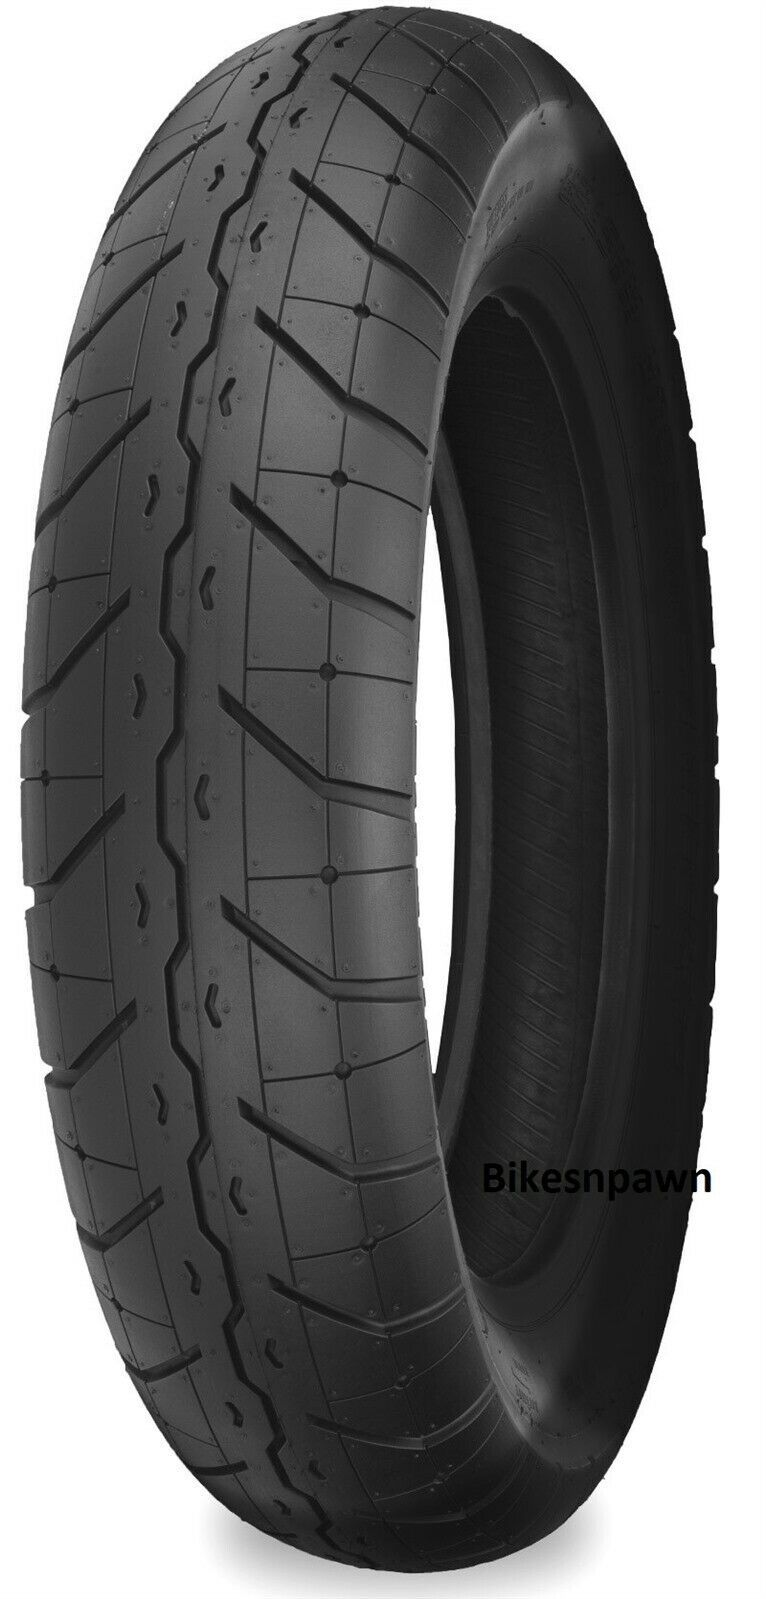 New Shinko 230 Tour Master 120/90-18 Front Motorcycle Tire 65V